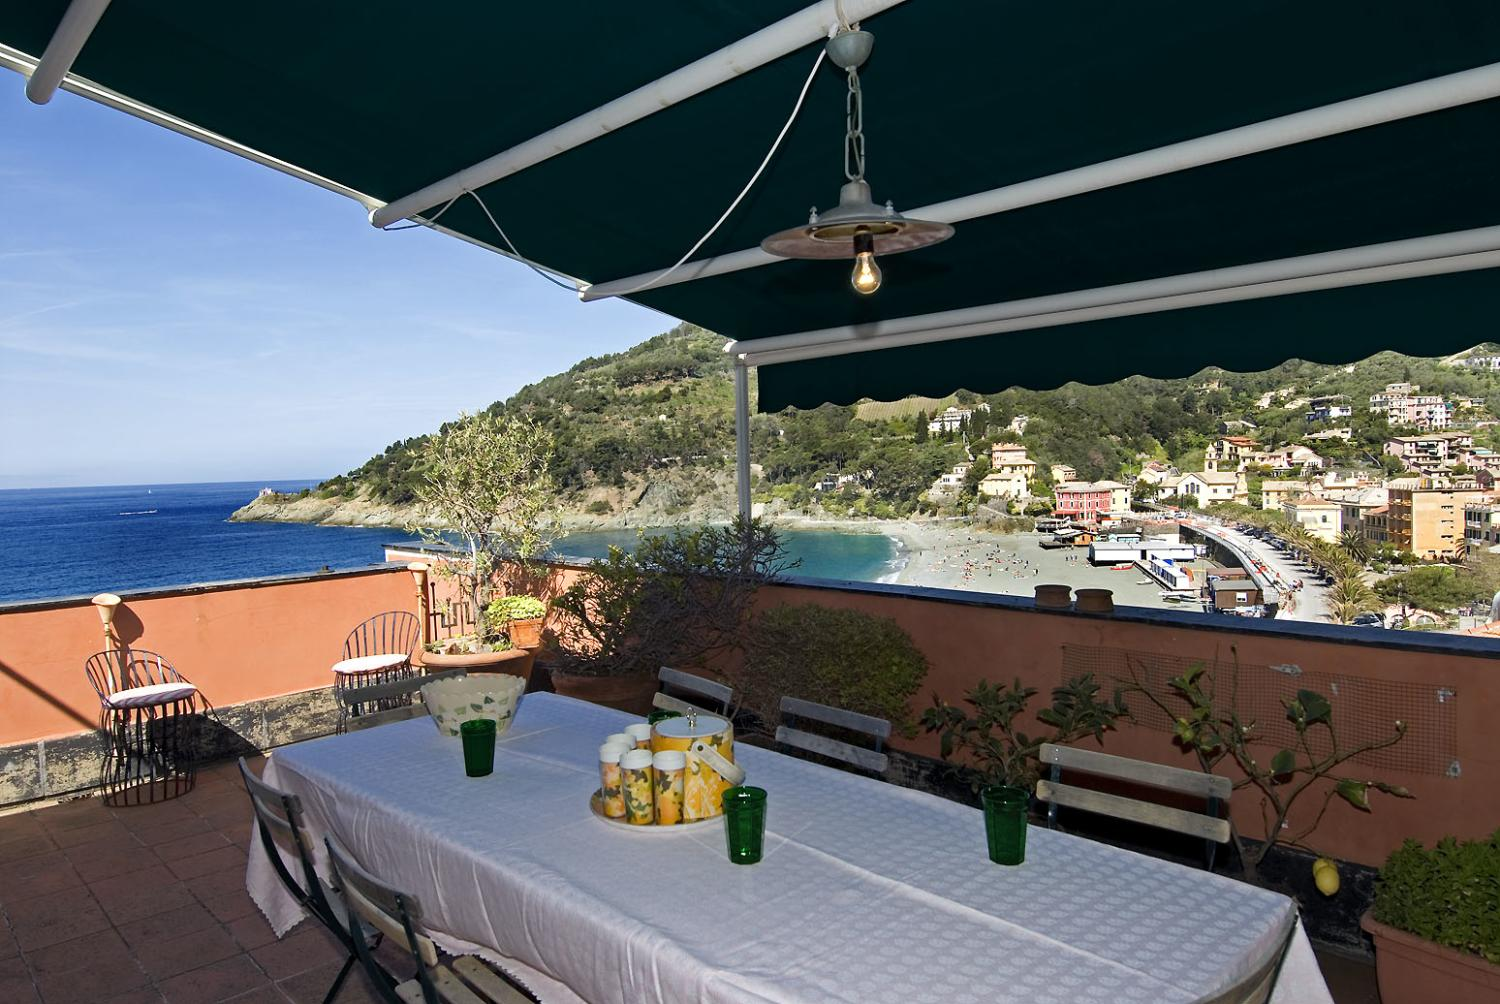 Outdoor dining sea view, Casa Di Mare, Liguria, Bonassola.